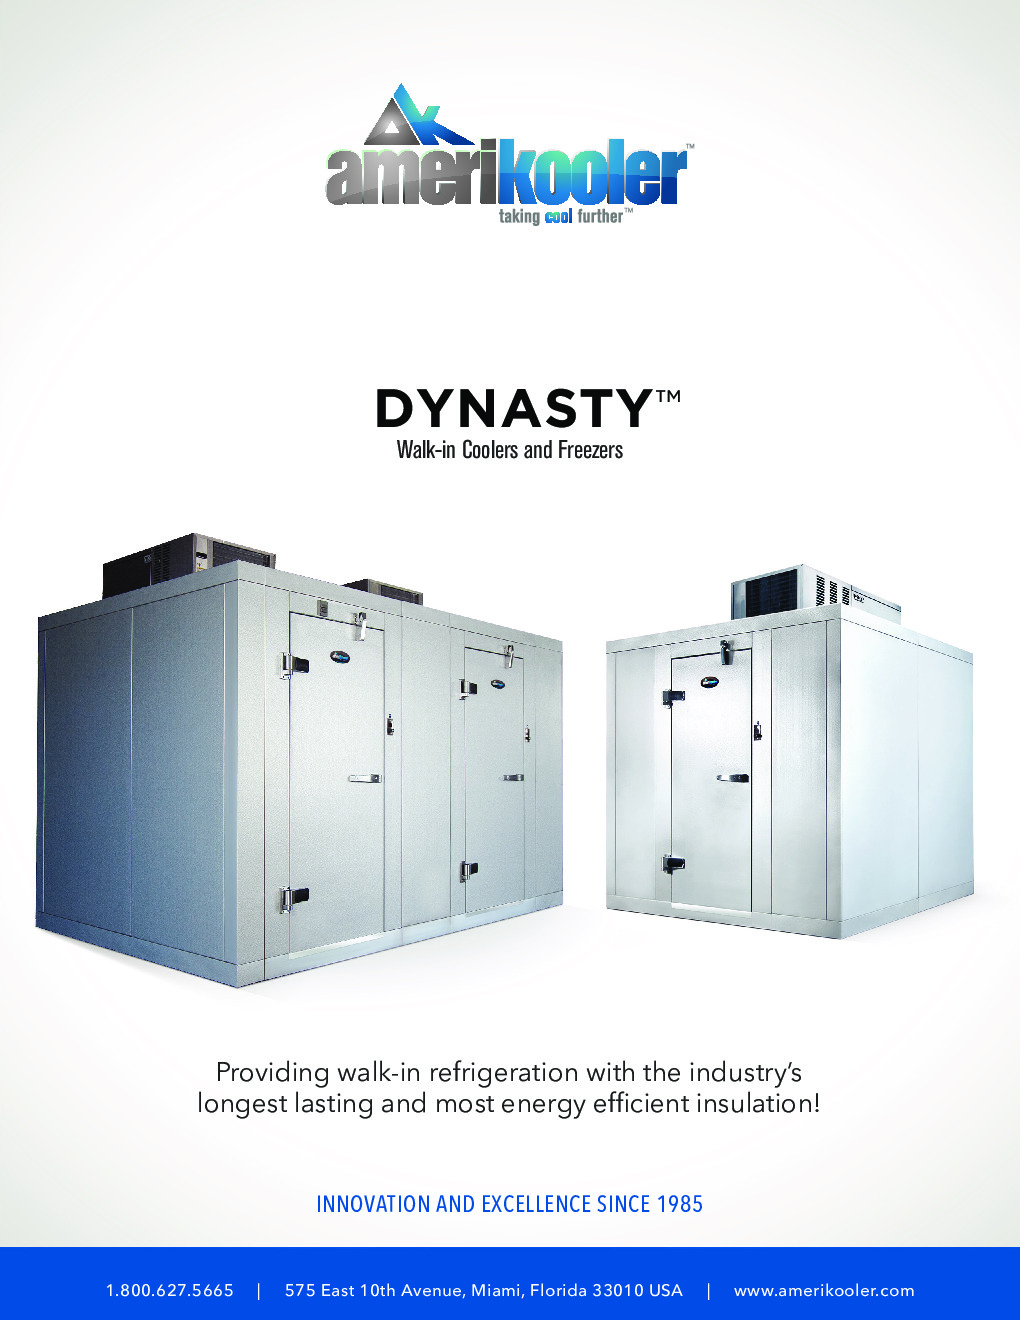 AmeriKooler DW091277F-4/8-SC 9' X 12' Walk-In Cooler, 8' L Cooler with Floor and 4' L Freezer, Self Contained